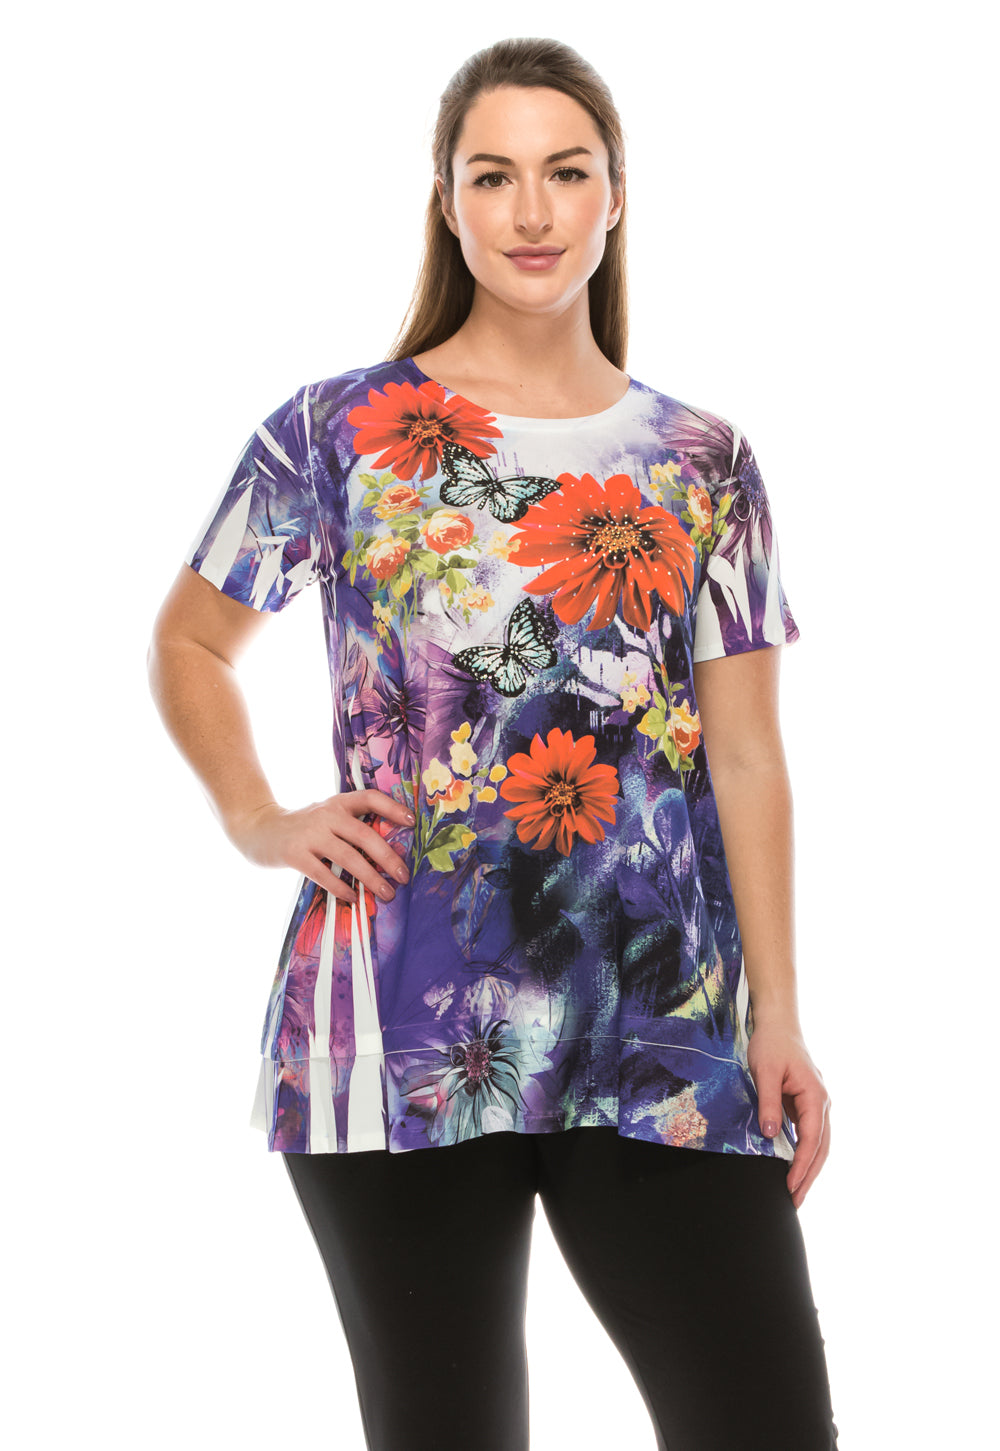 Jostar Women's HIT Slub Bottom Layered Top Short Sleeve Sublimation Rhinestone, 326HT-SU-R-U145 - Jostar Online